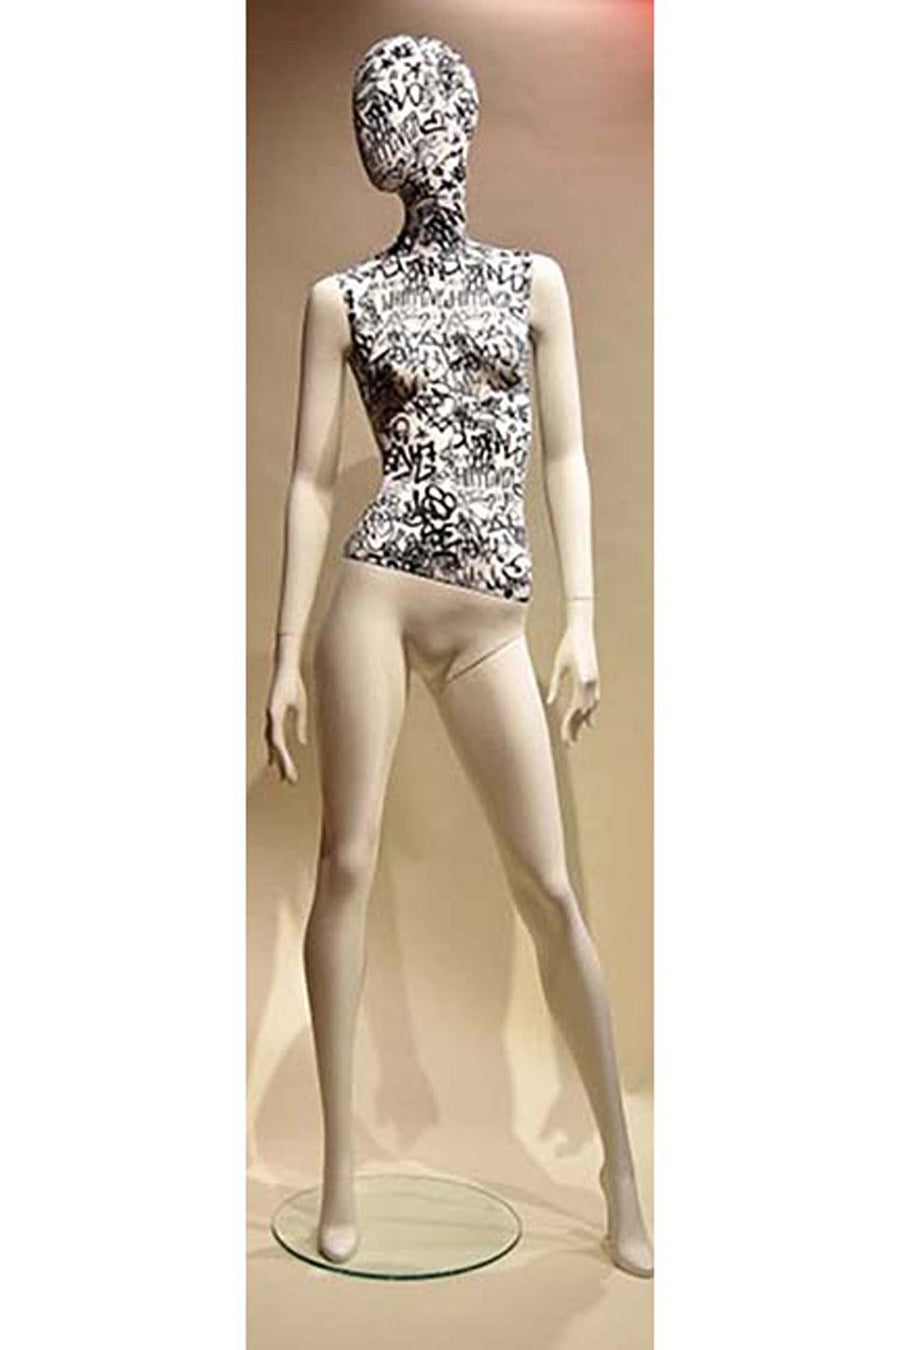 female mannequin with graffiti torso and head and pure white arms and legs